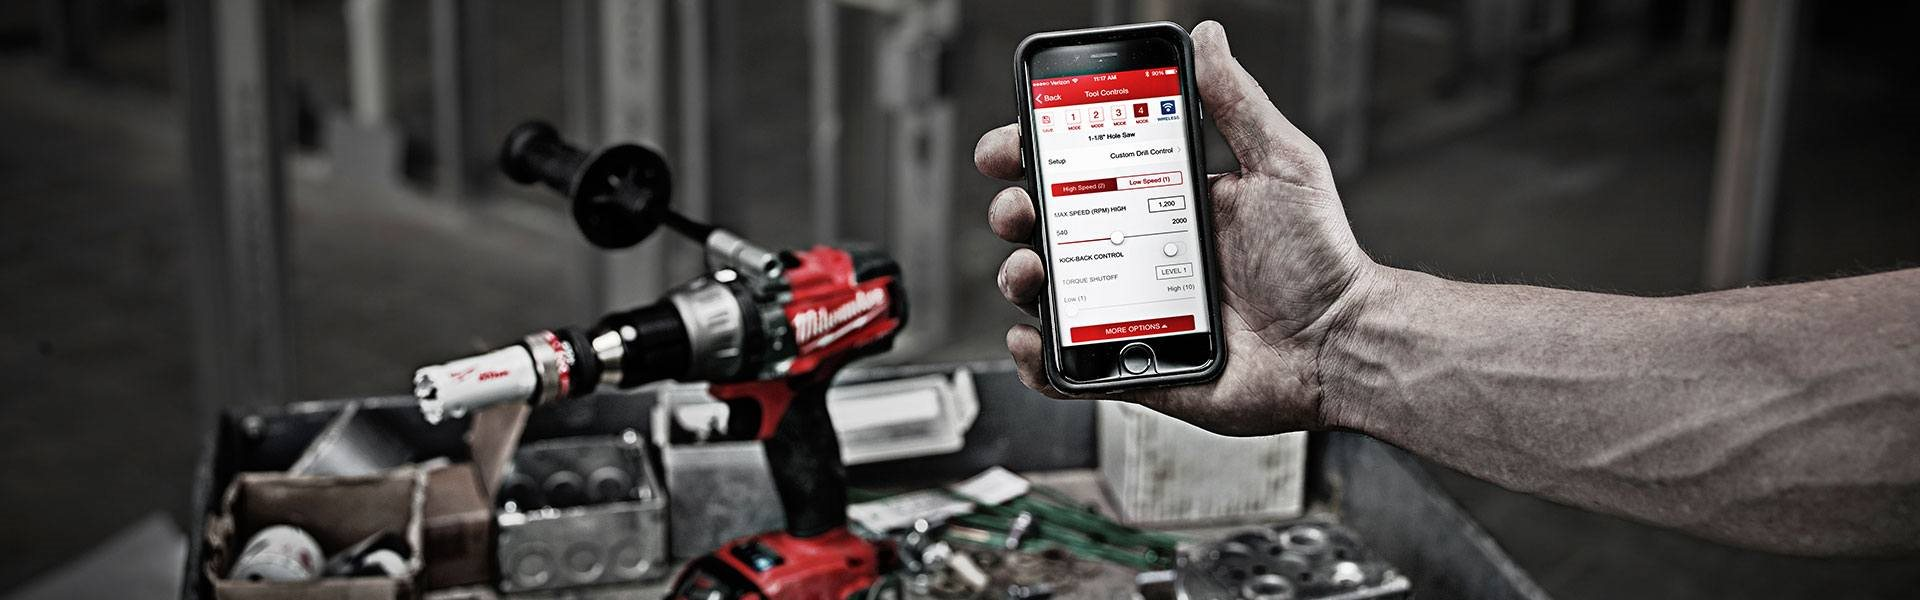 ONE-KEY™, the first 